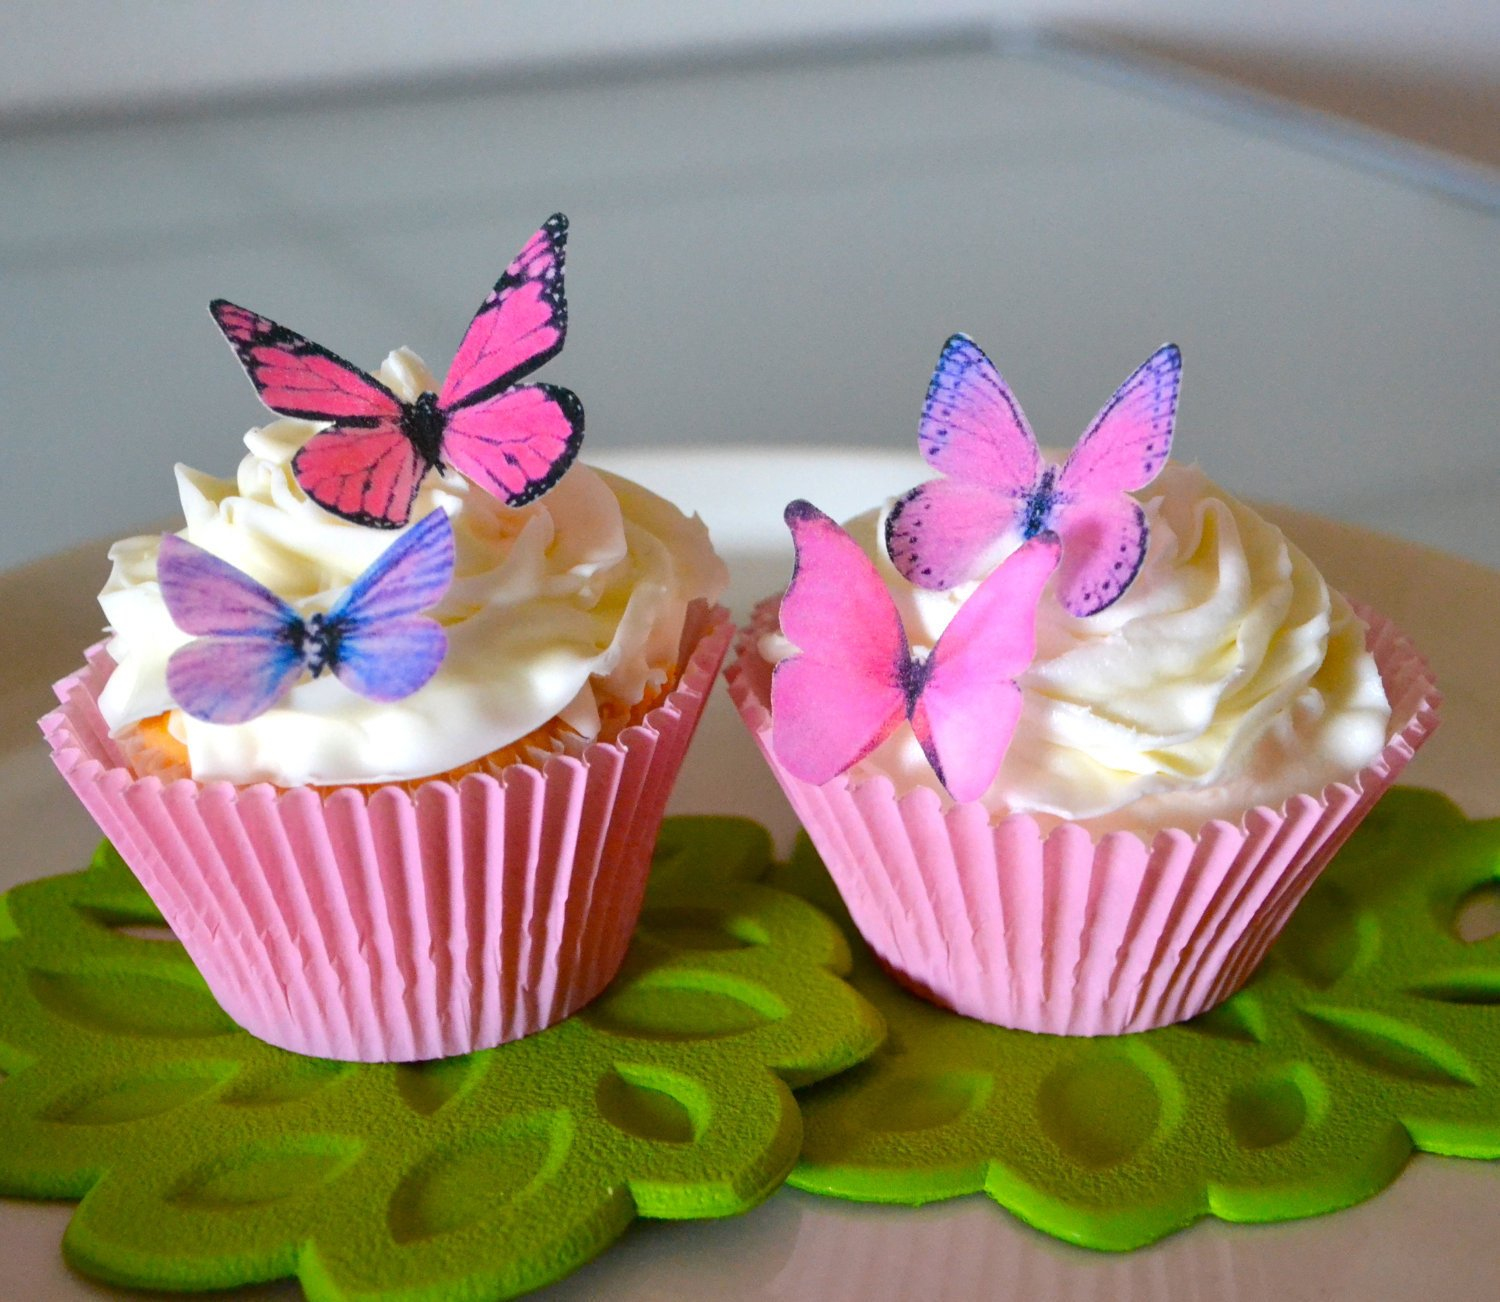 Amazoncom Edible Butterflies Small Assorted Pink and Purple Set